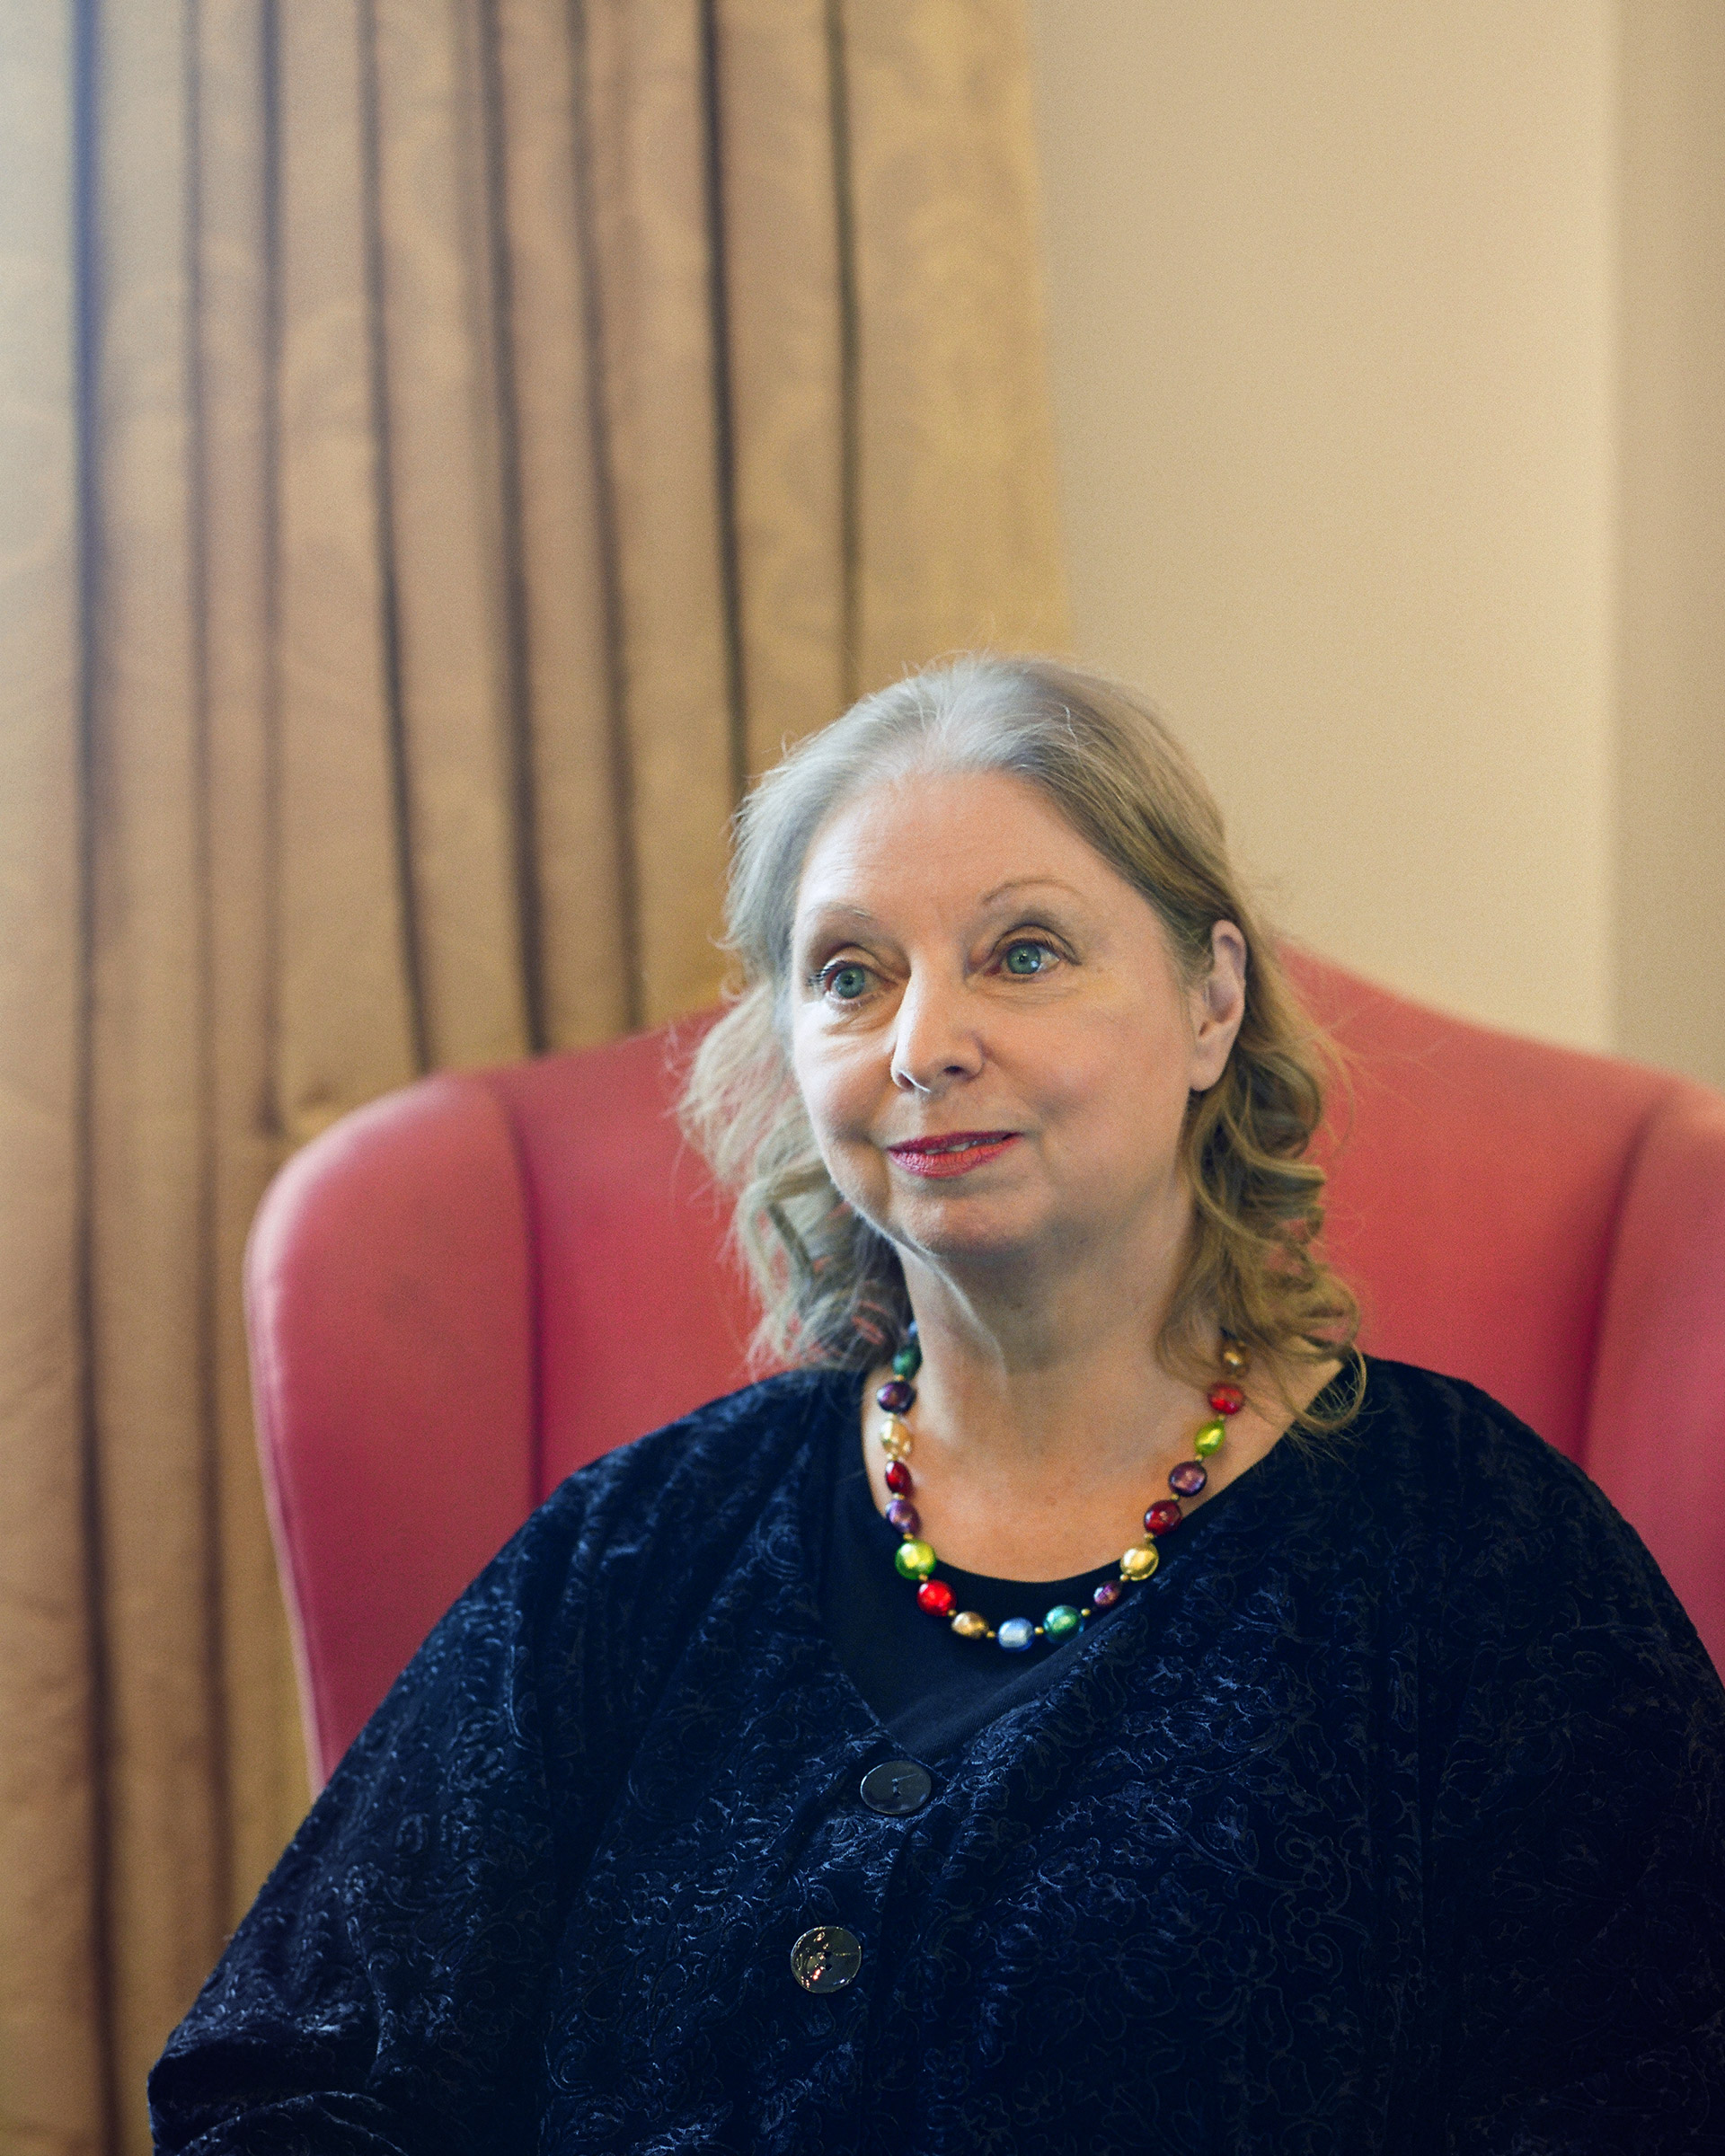 Hilary Mantel photographed at Gray's Inn in London, England on Feb. 19, 2020.